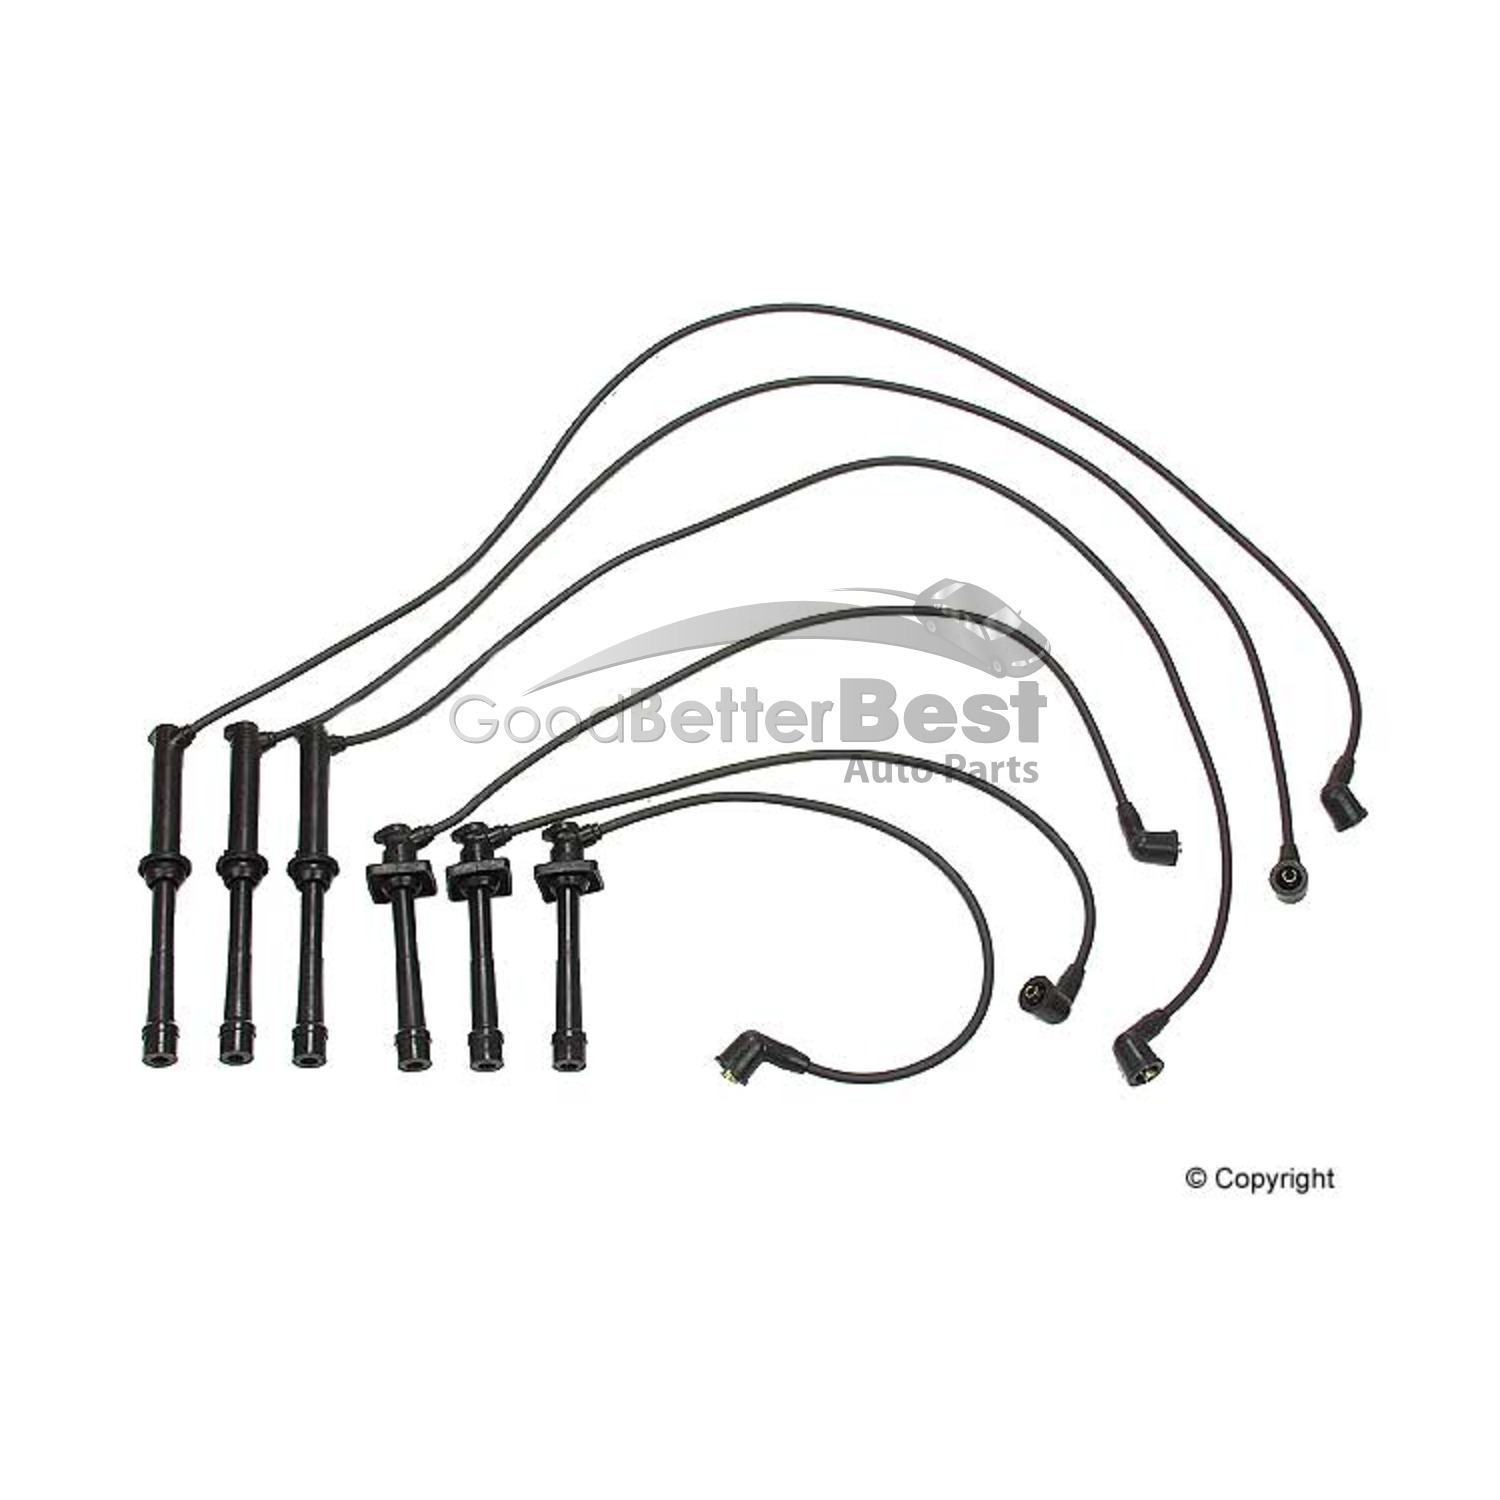 New OPparts Spark Plug Wire Set 3577501 for Mazda 626